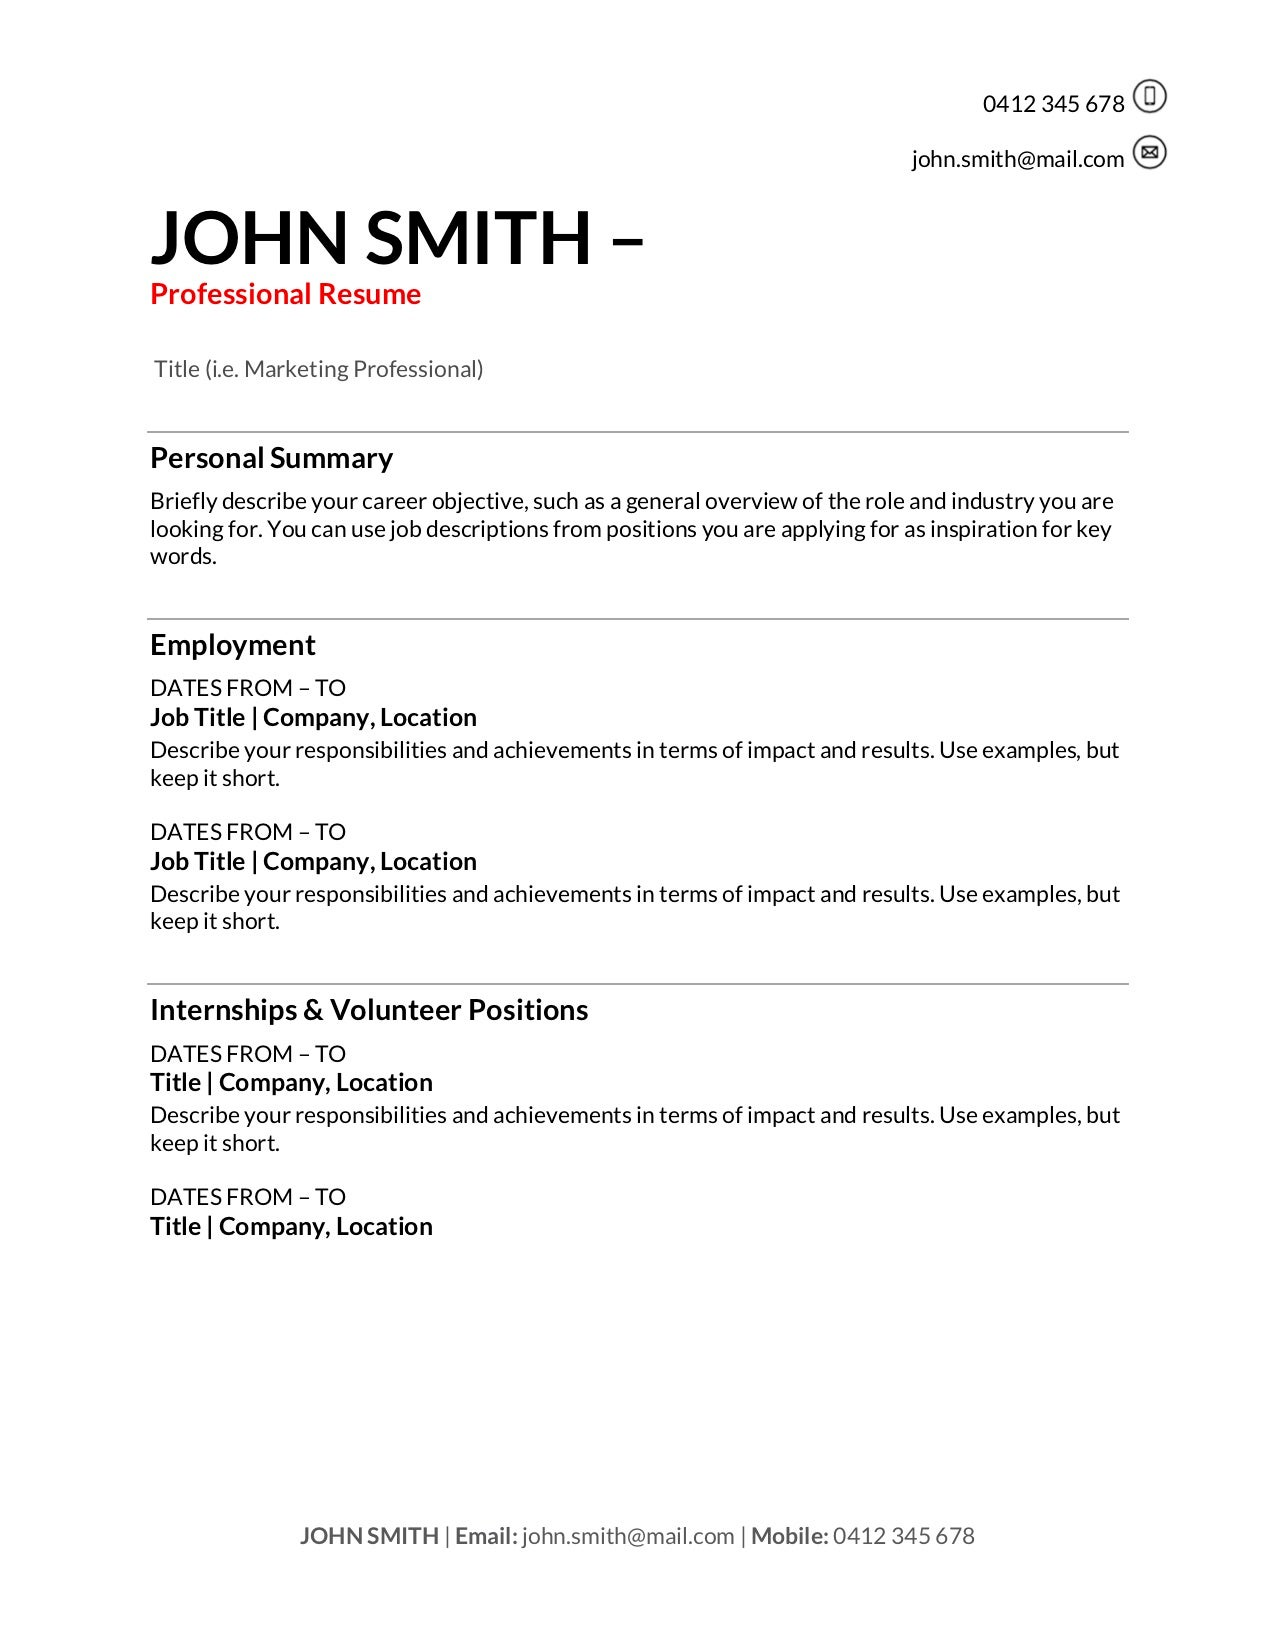 free resume templates to write in training au employment template for commercial cleaning Resume Employment Resume Template